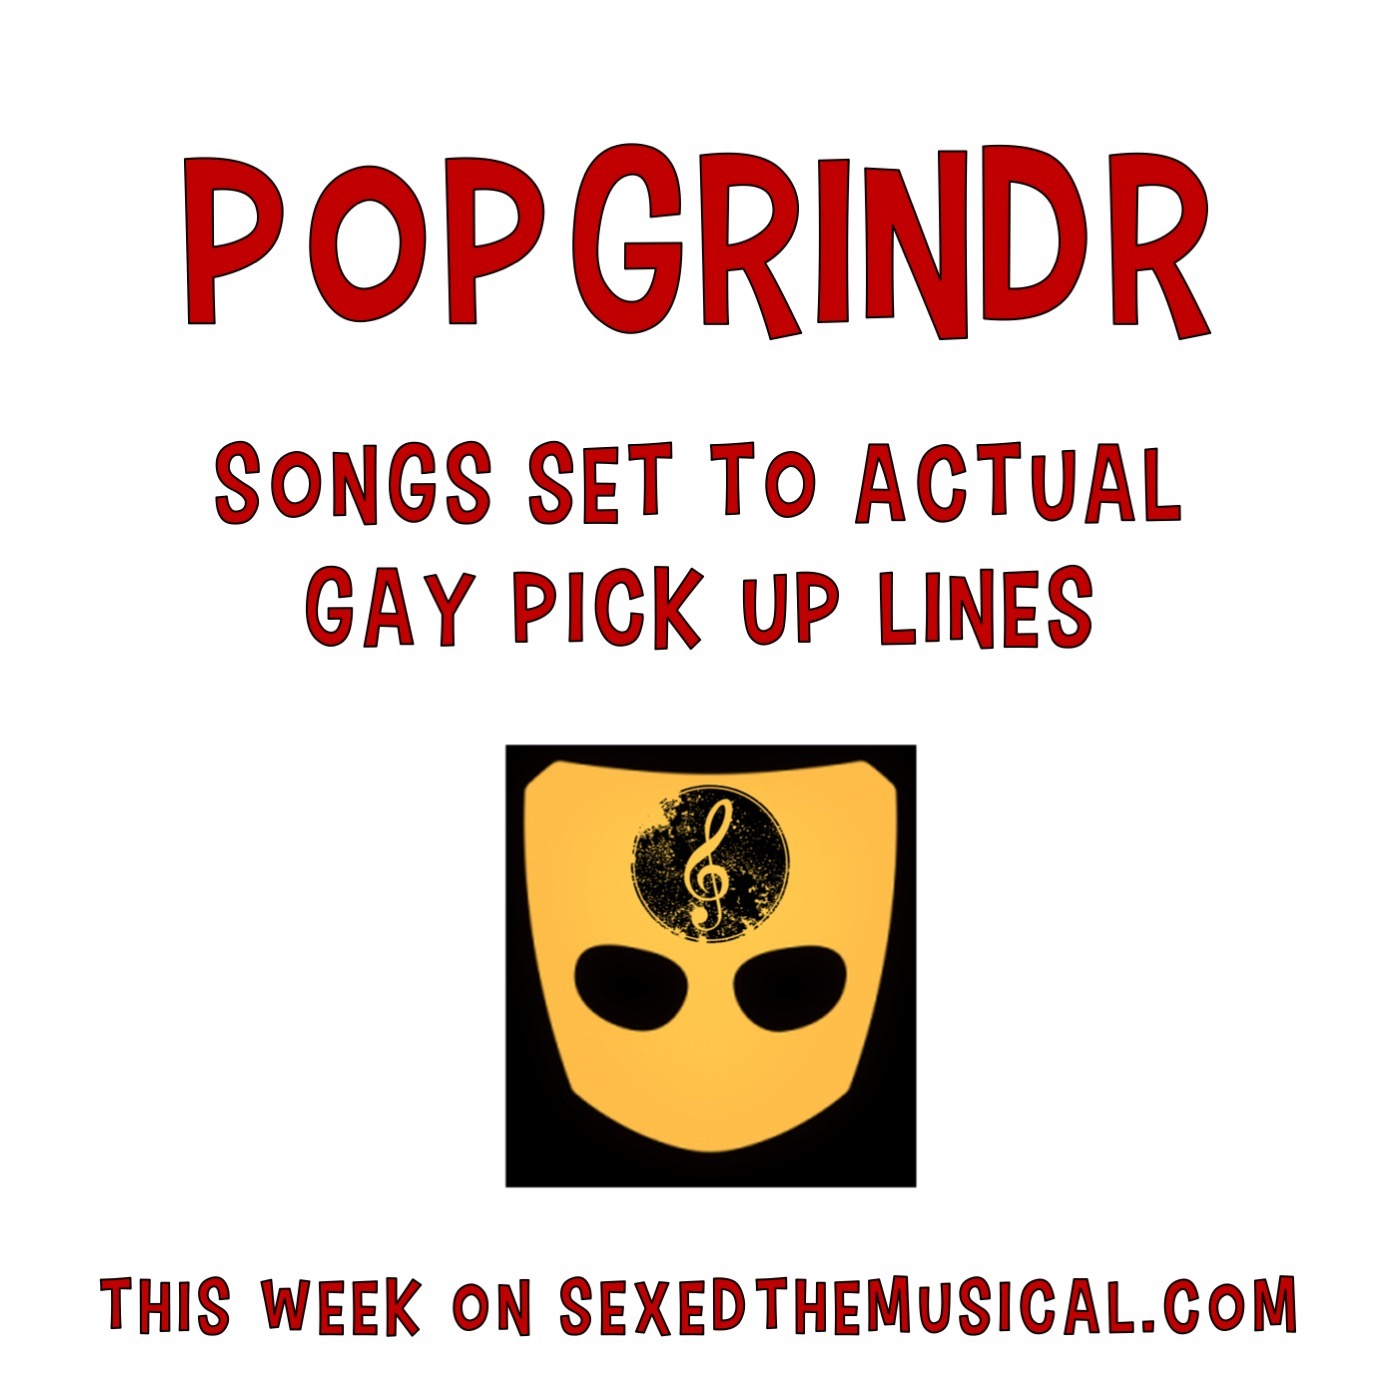 POPGRINDR -- SONGS SET TO ACTUAL GAY PICK UP LINES